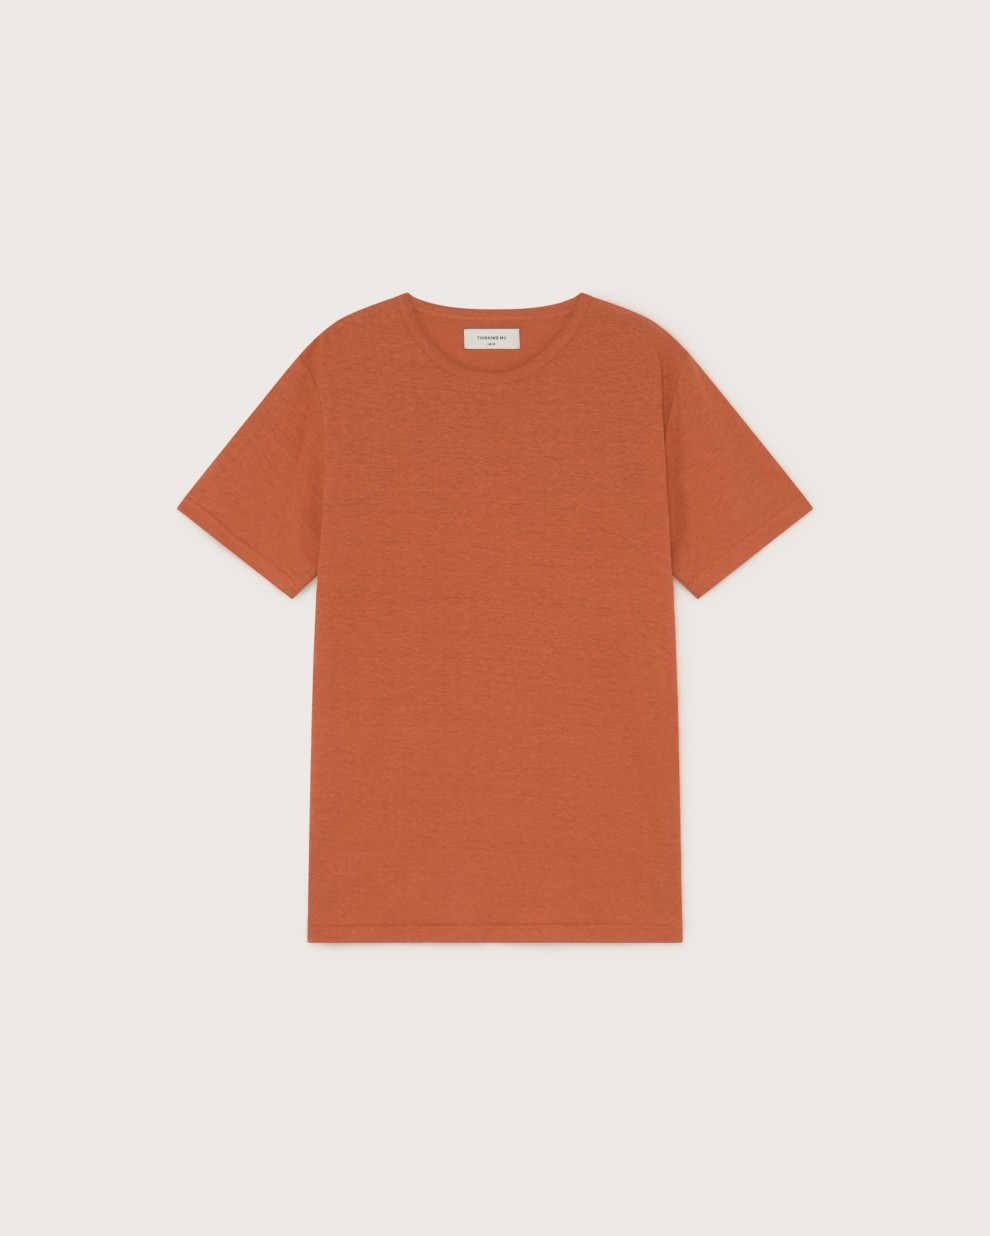 TERRACOTTA HEMP T-SHIRT